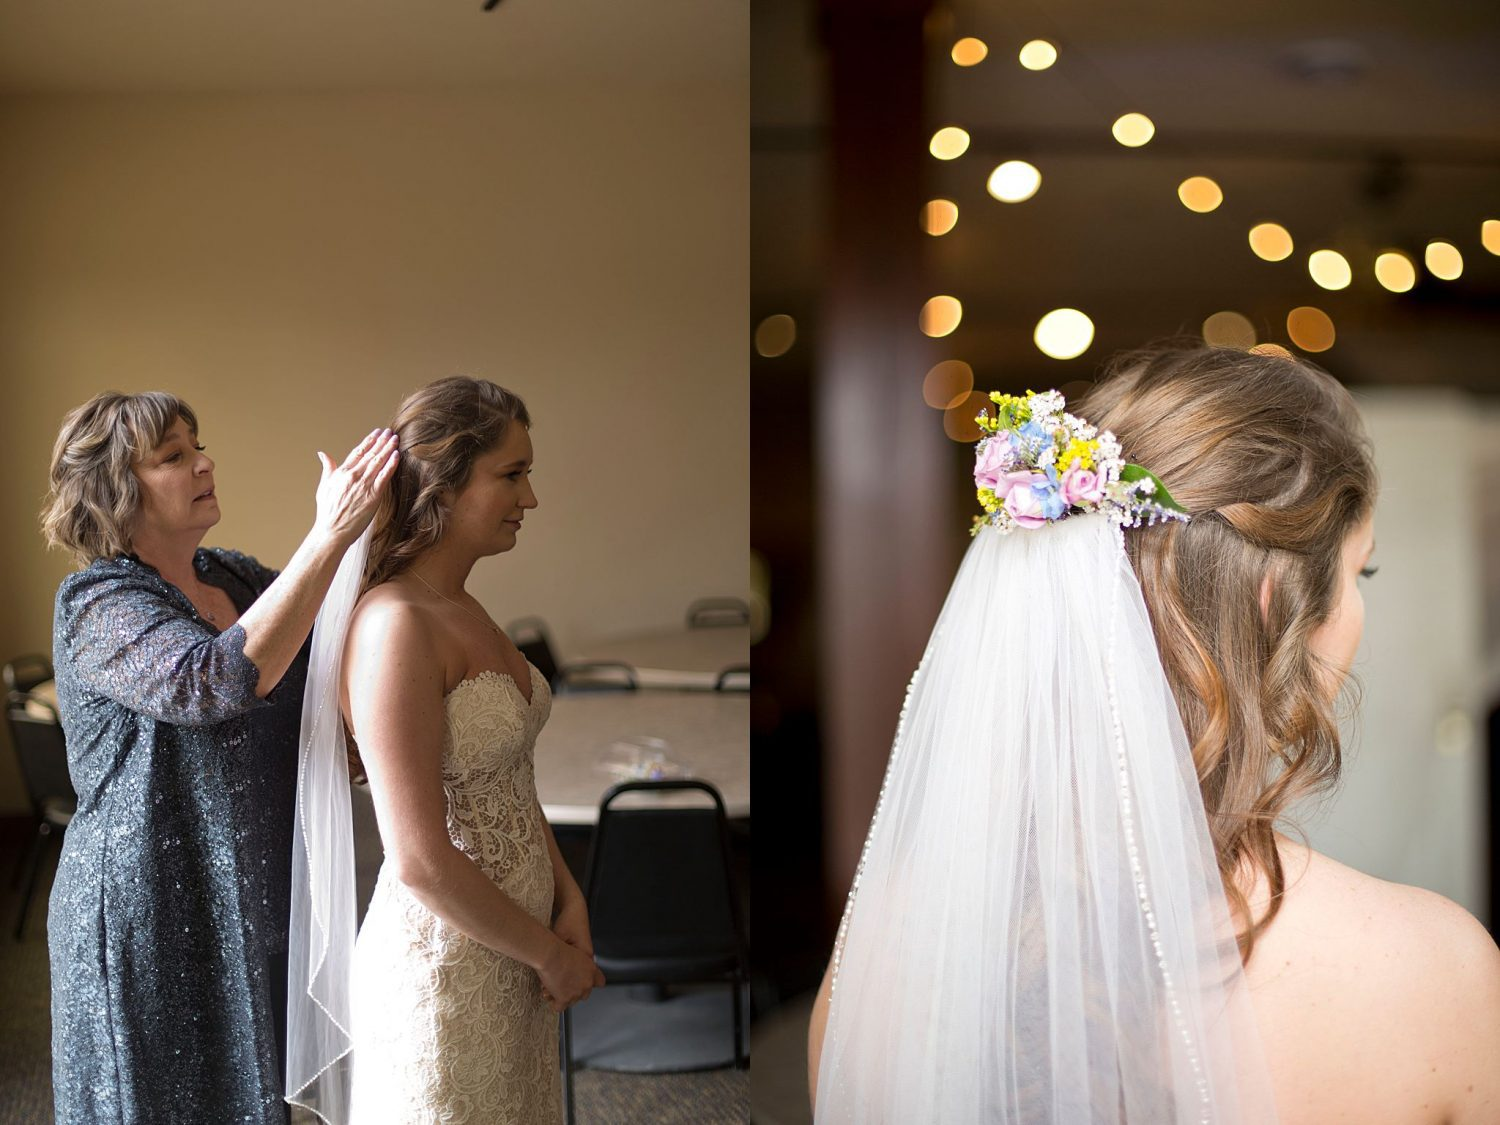 Mom putting the bride's veil in as they stand by a window.